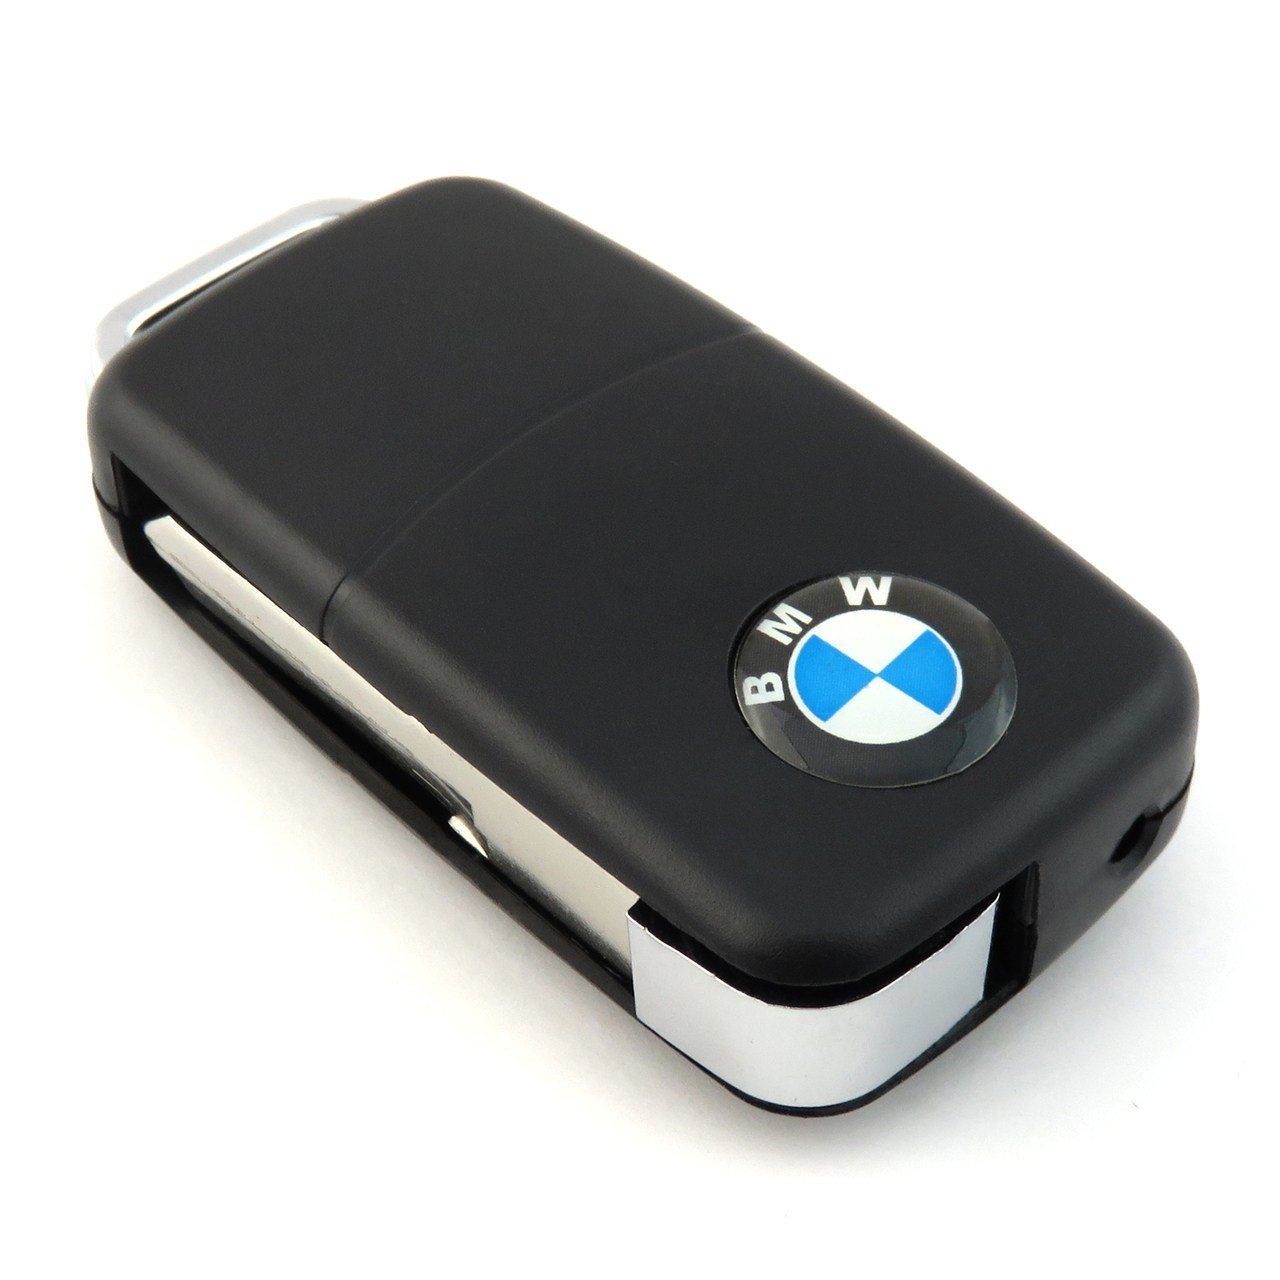 Latest Bmw Car Key Camera Keyring Keyfob Dvr Pocket Video Audio Cam Free Download